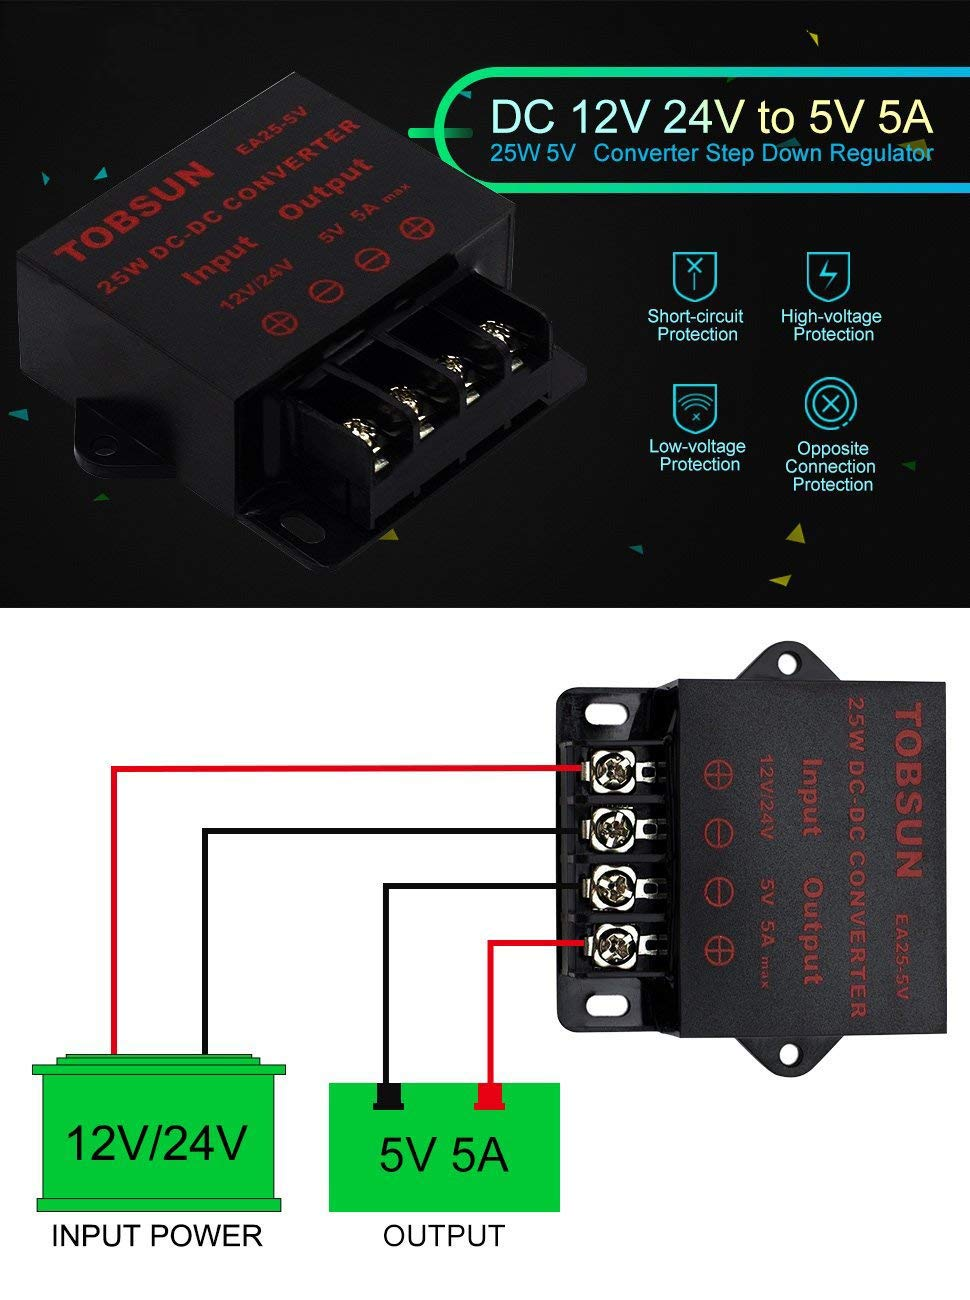 Epbowpt Power Converter Regulator Dc 12v 24v To 5v 5a Regulated Supply With Overvoltage Protection Schematic 25w Step Down Module Transformer Garden Outdoor